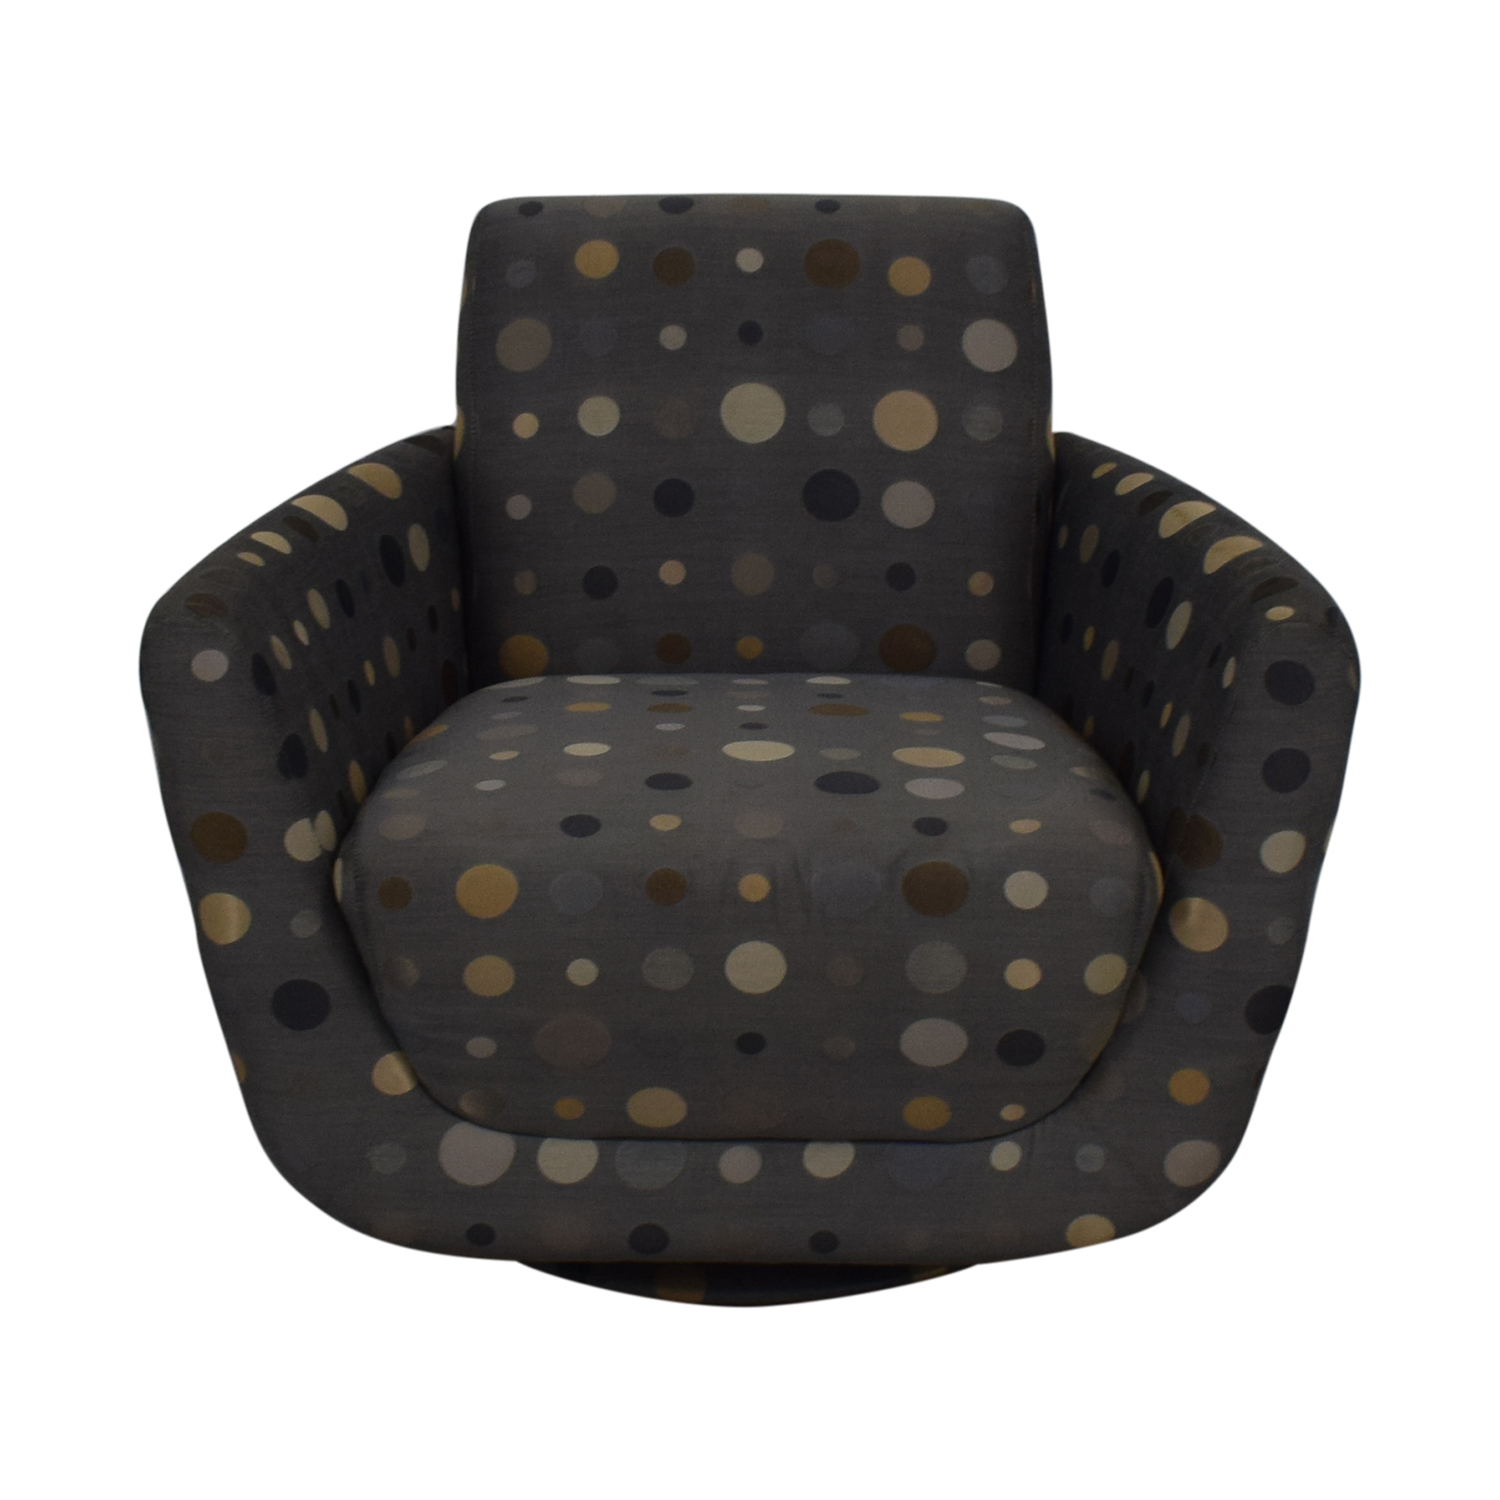 Nienkamper Nienkamper Polka Dot Accent Chair discount